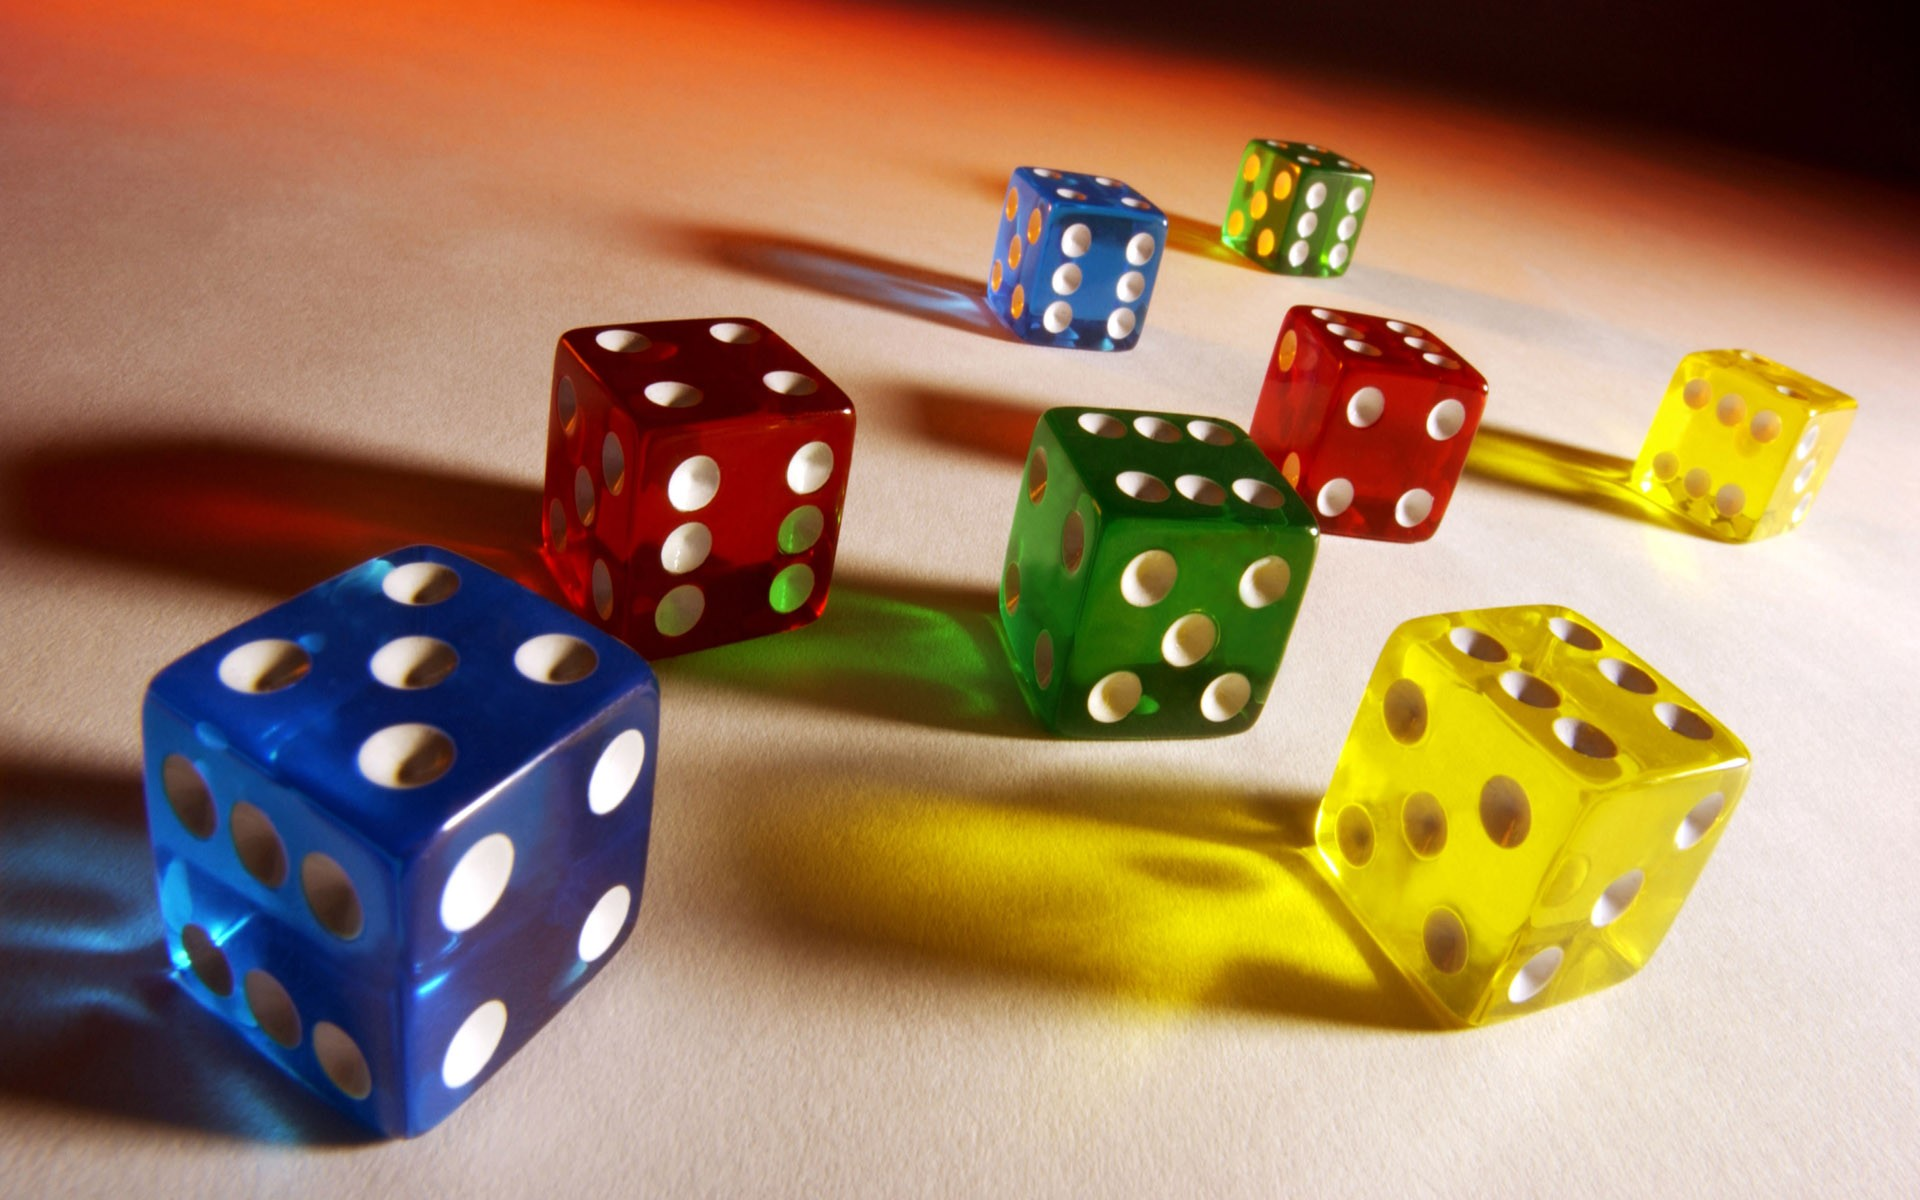 Benefit from the most enjoyable game of probability seen on the gclub program, make money, and enjoy with friends and relations